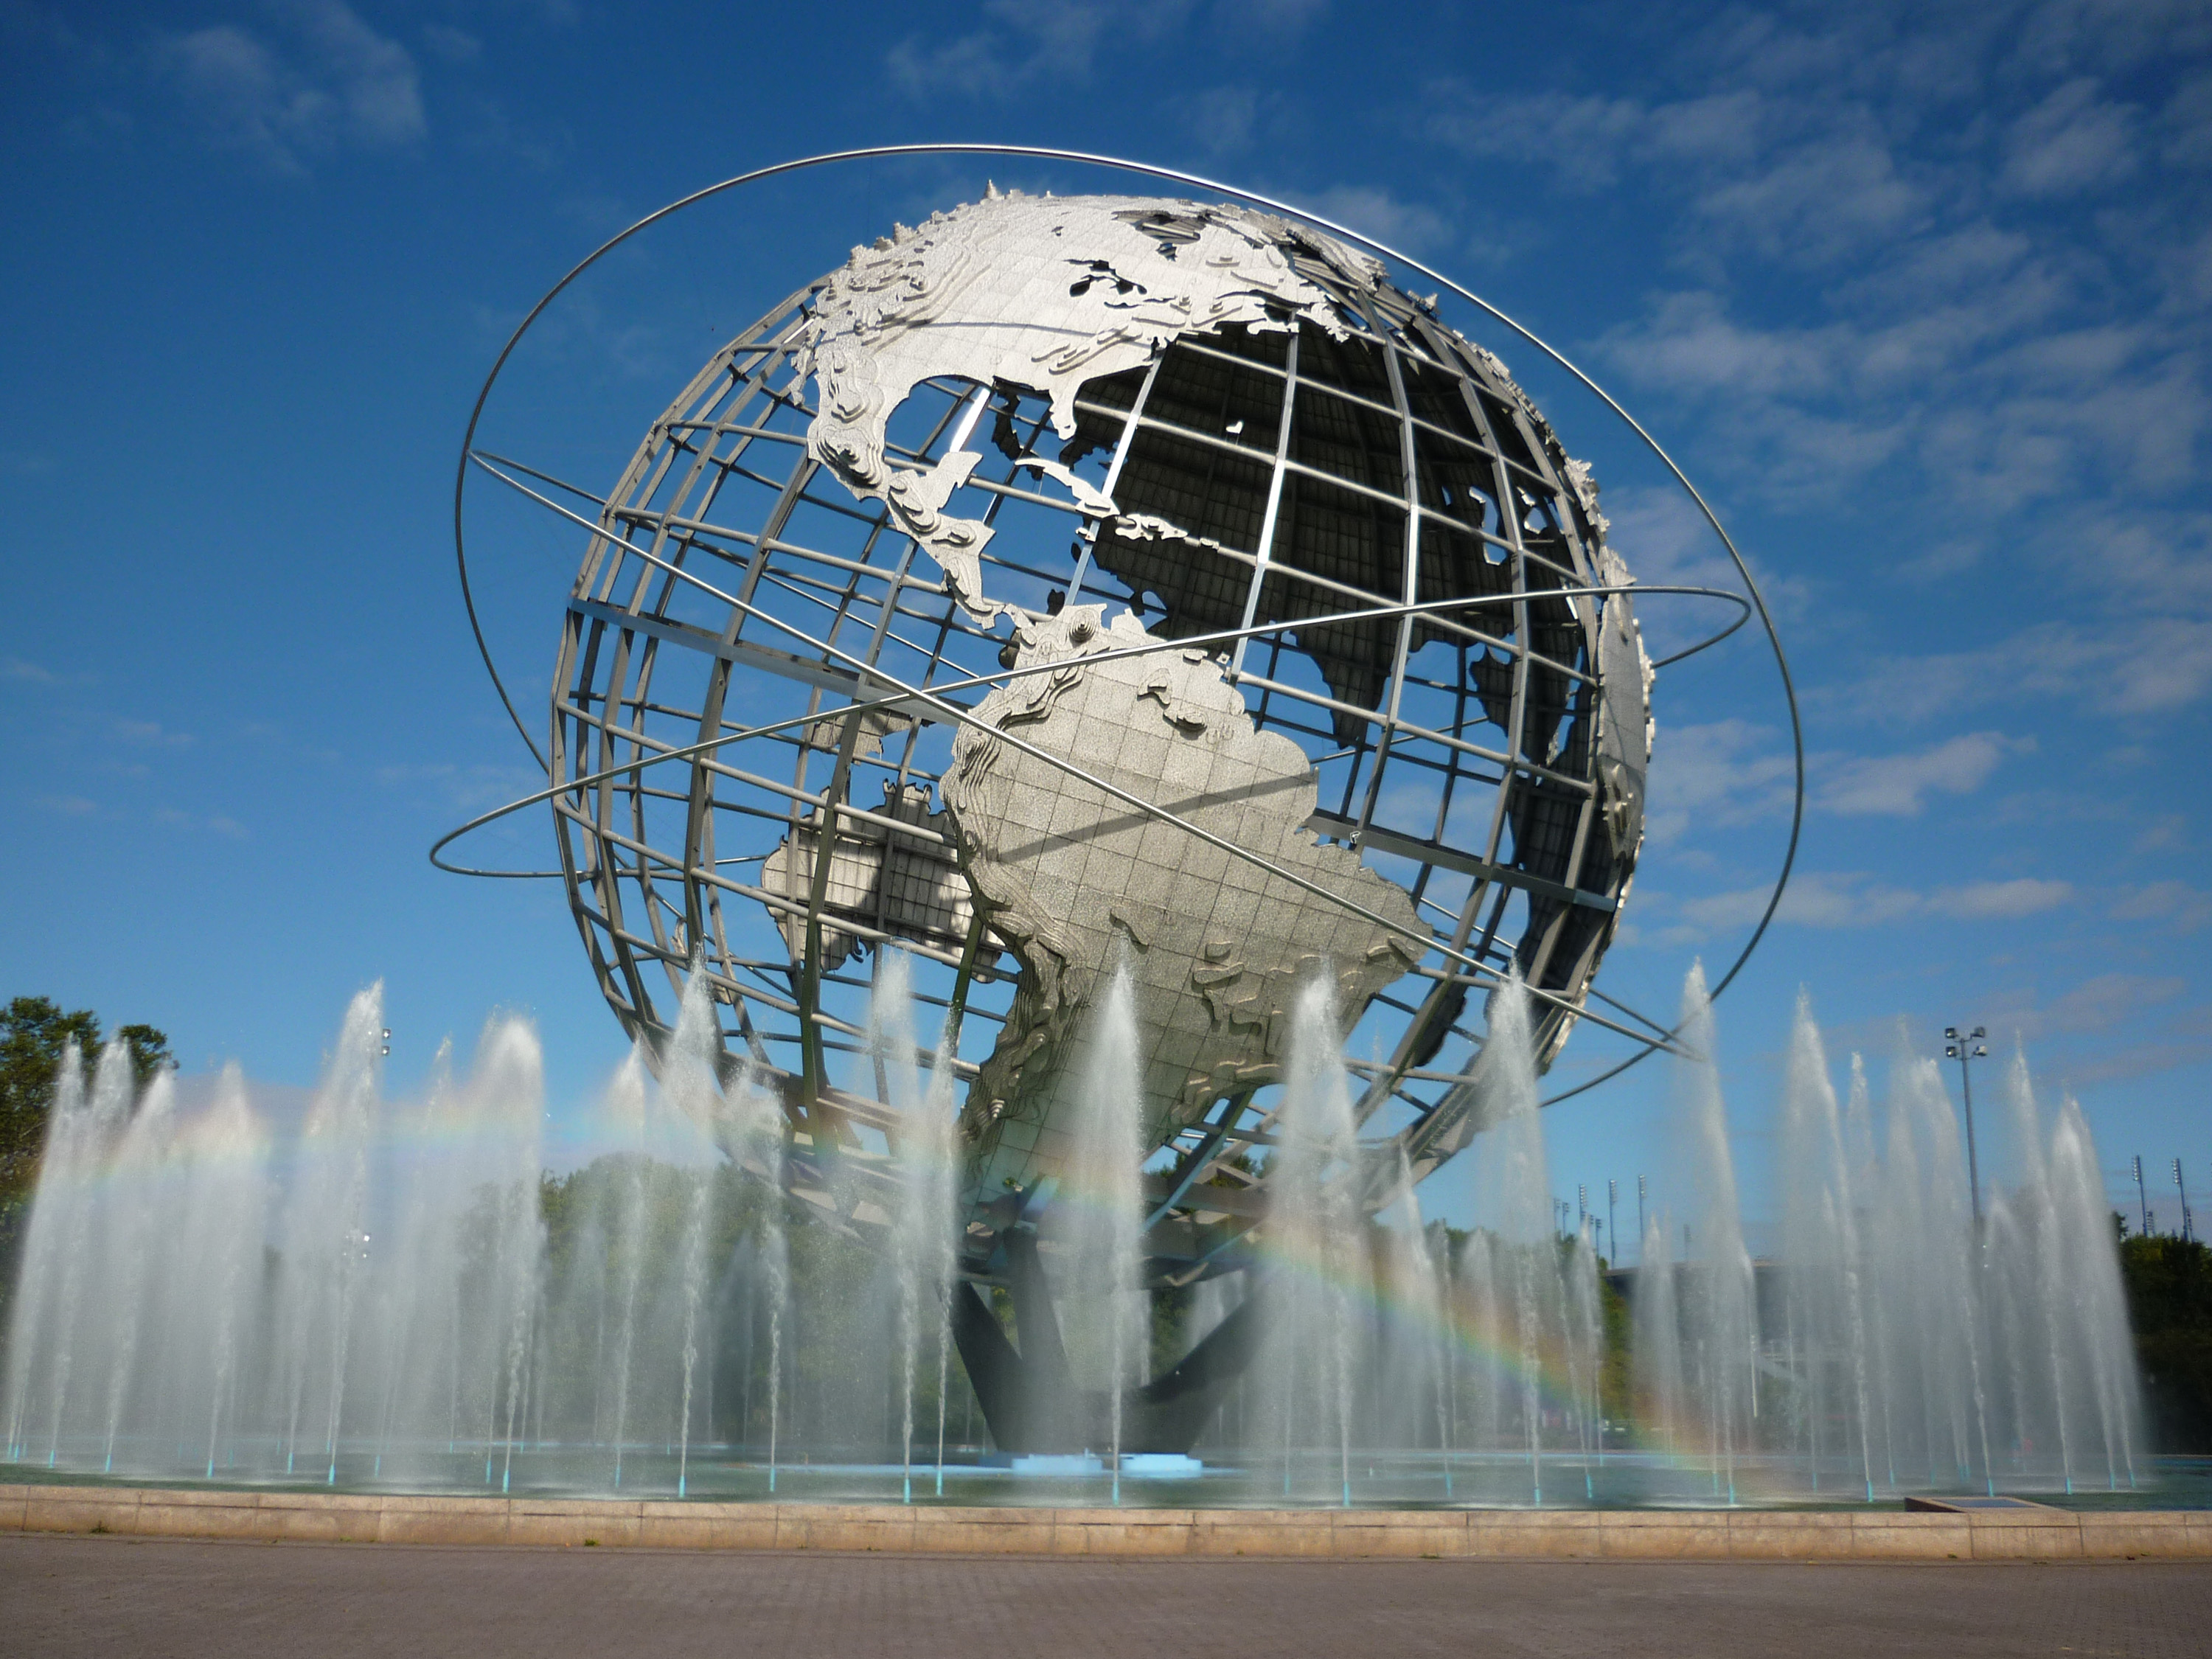 Free Stock Photo 6508 Unisphere In Flushing Meadows Freeimageslive